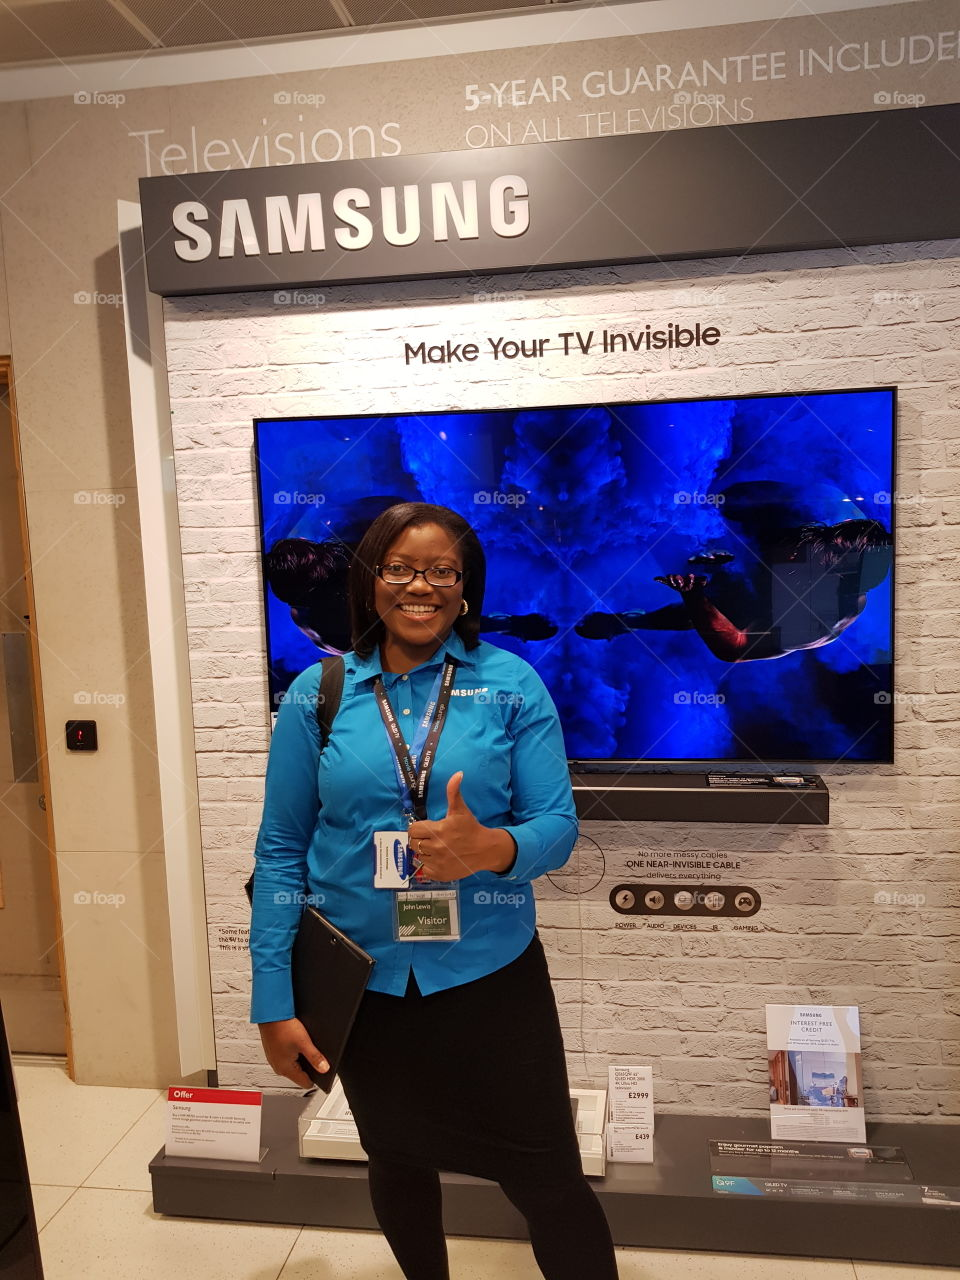 Samsung QLED television with soundbar on display wall and field force